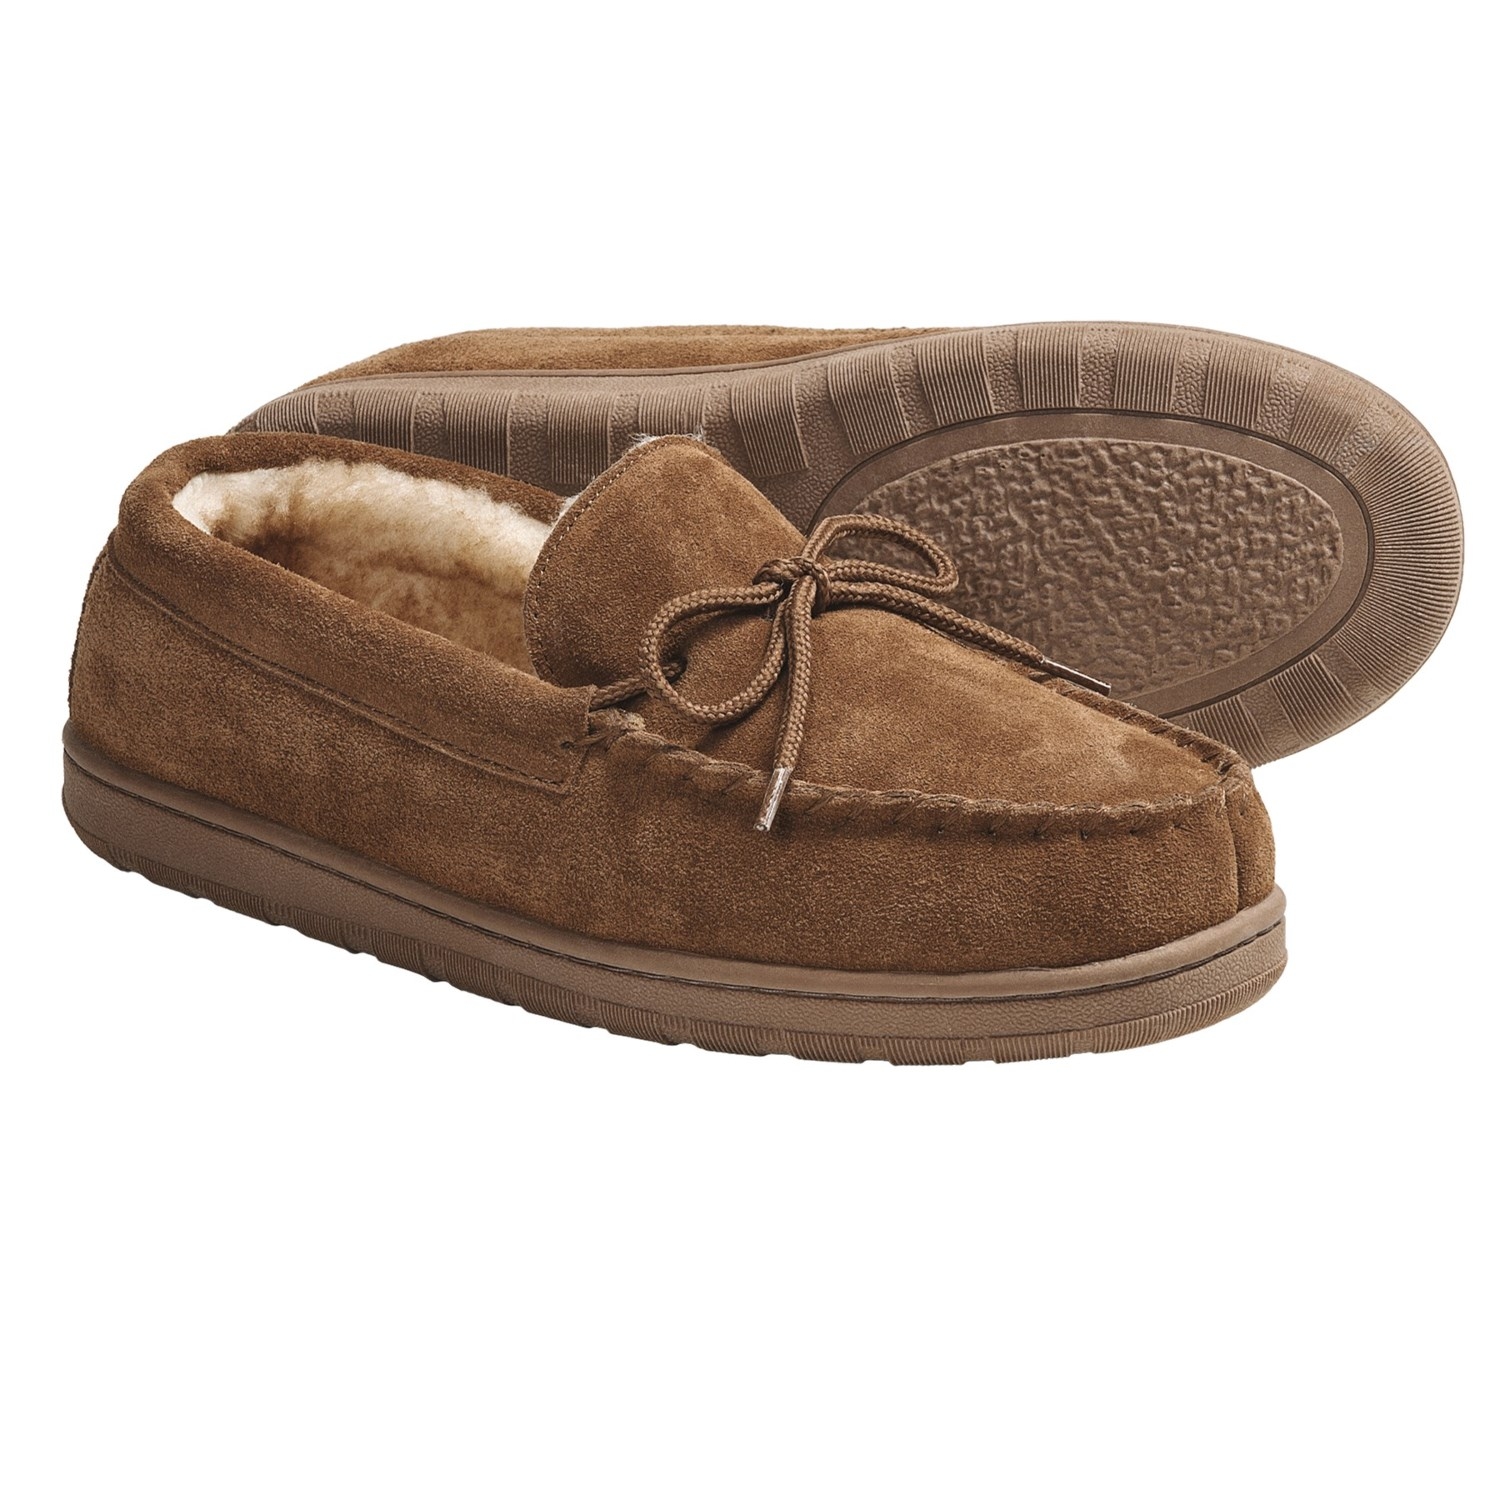 moccasin shoes for 28 images mens leather moccasin